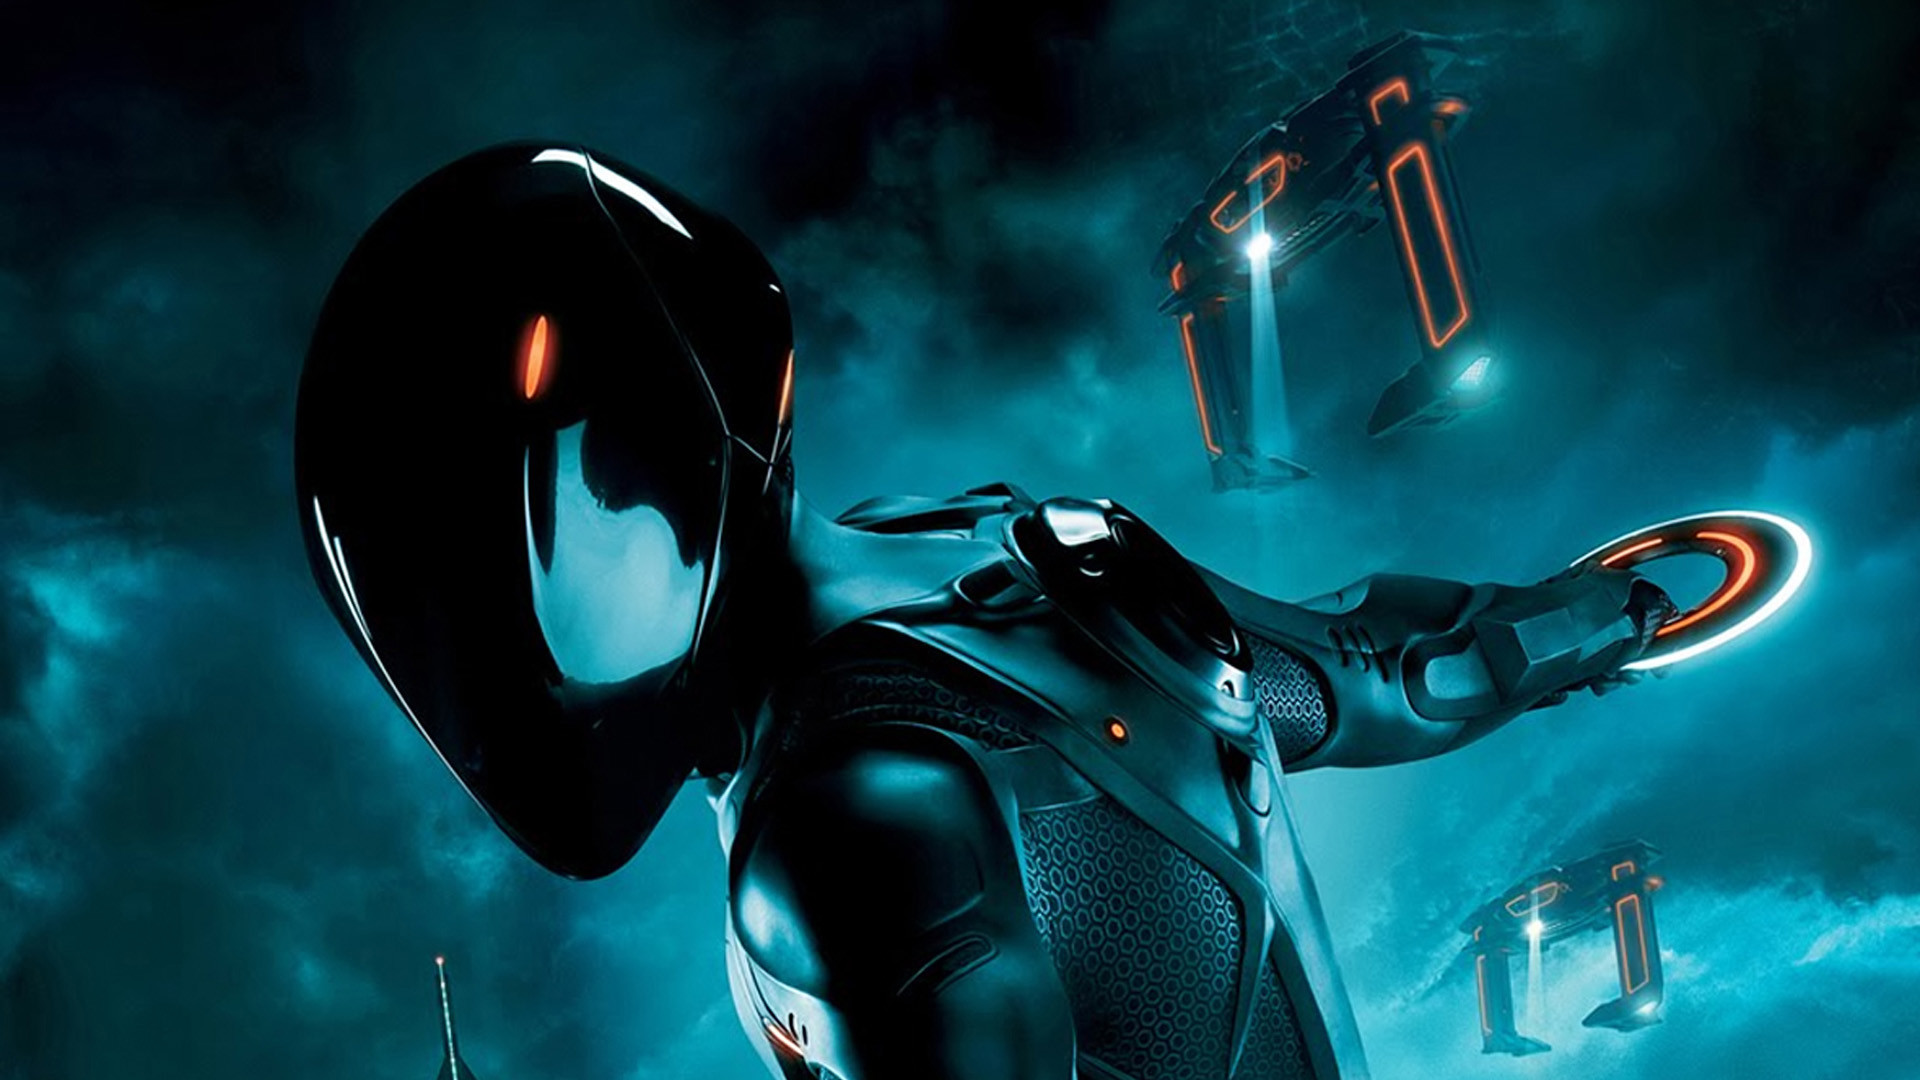 Grayscale Girl Wallpaper Tron Legacy Wallpaper 1080p 67 Images